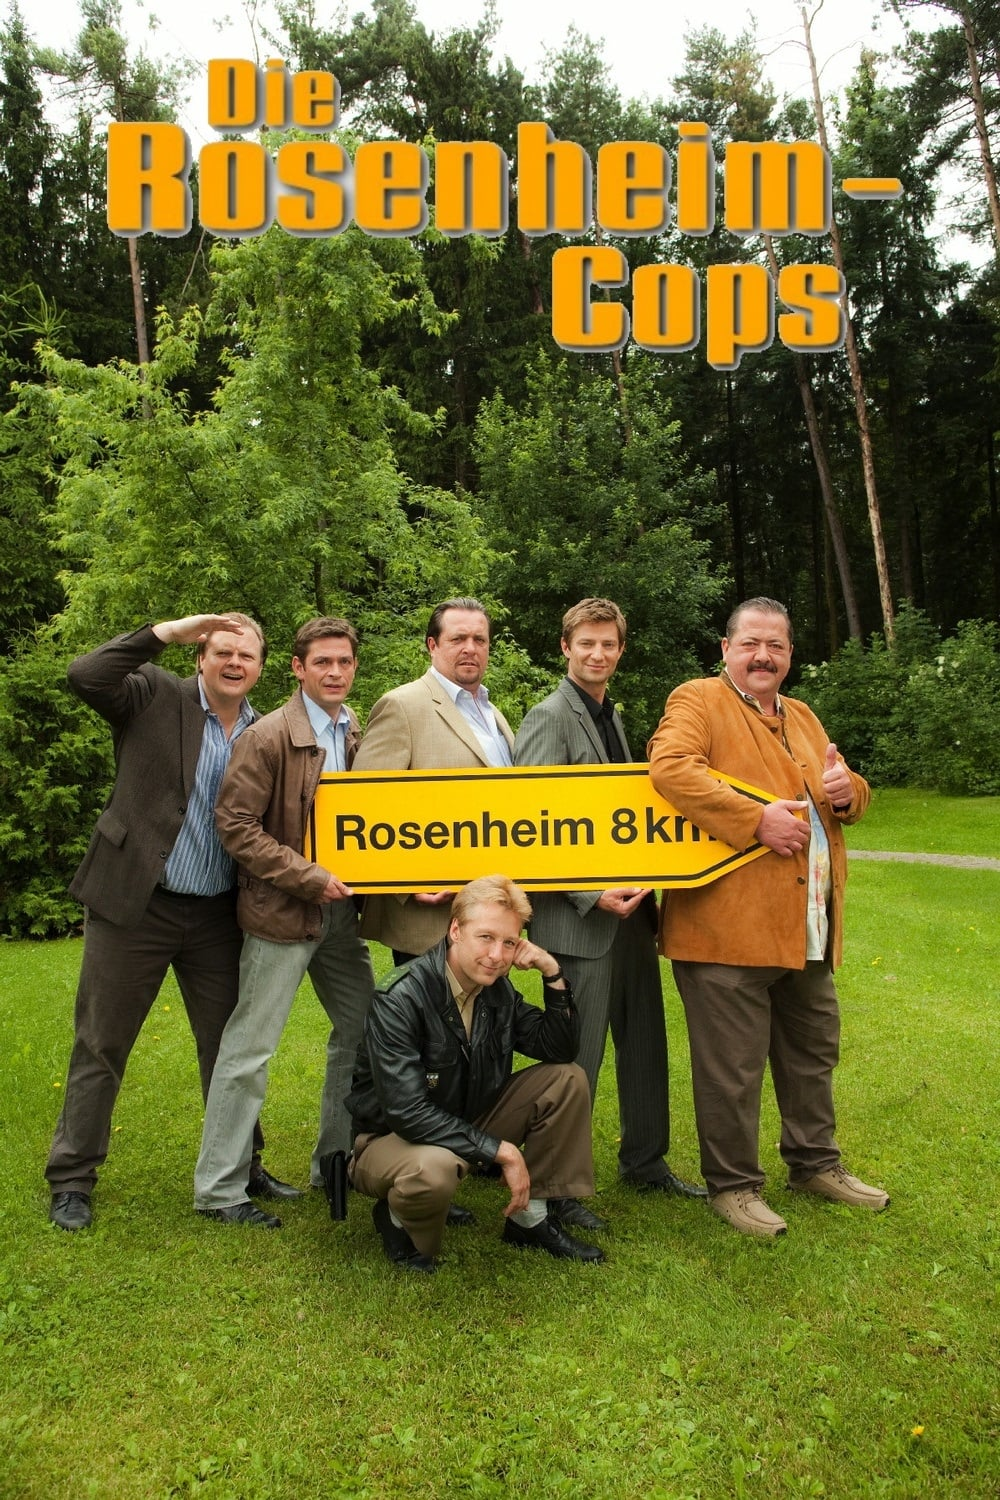 image for The Rosenheim Cops